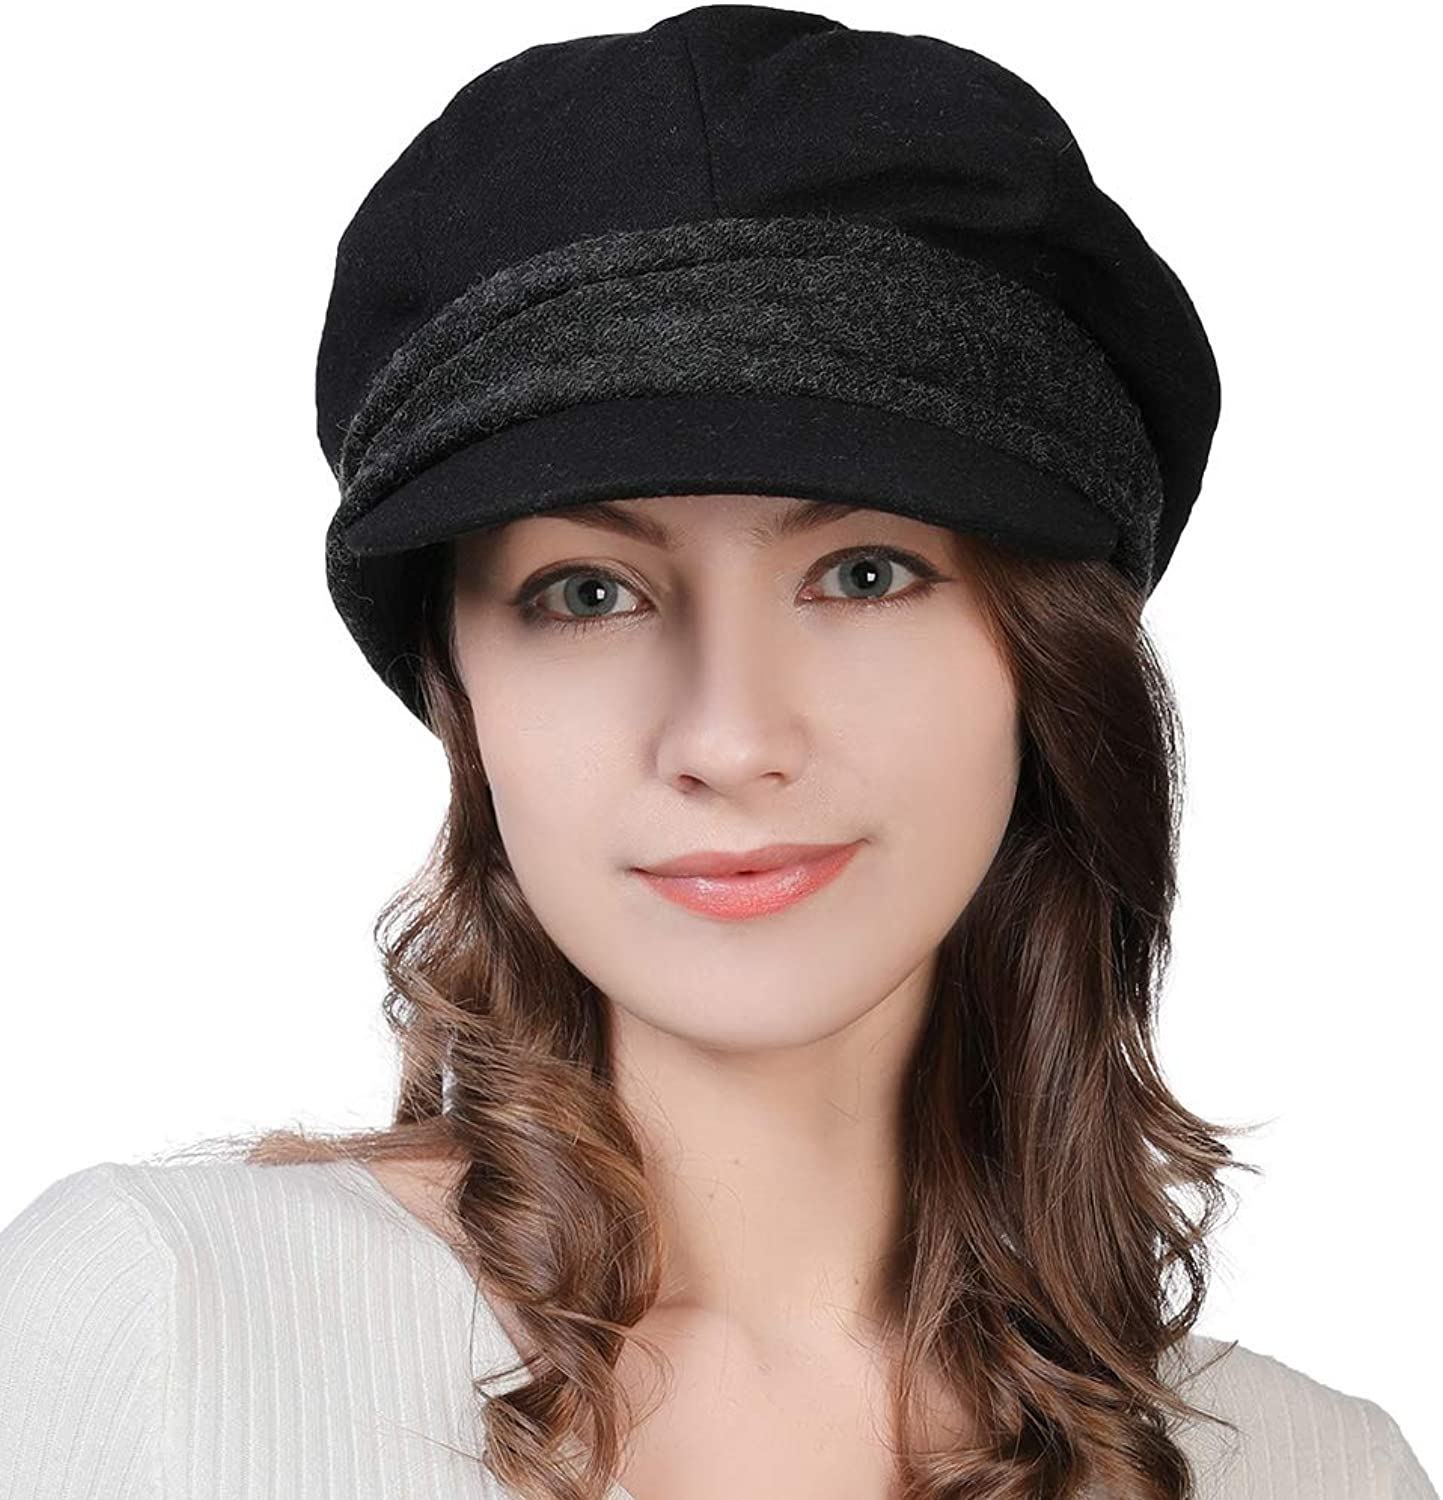 Womens Newsboy Cap Visor Beret Paperboy Conductor Painter Winter Fall Hat 5659cm